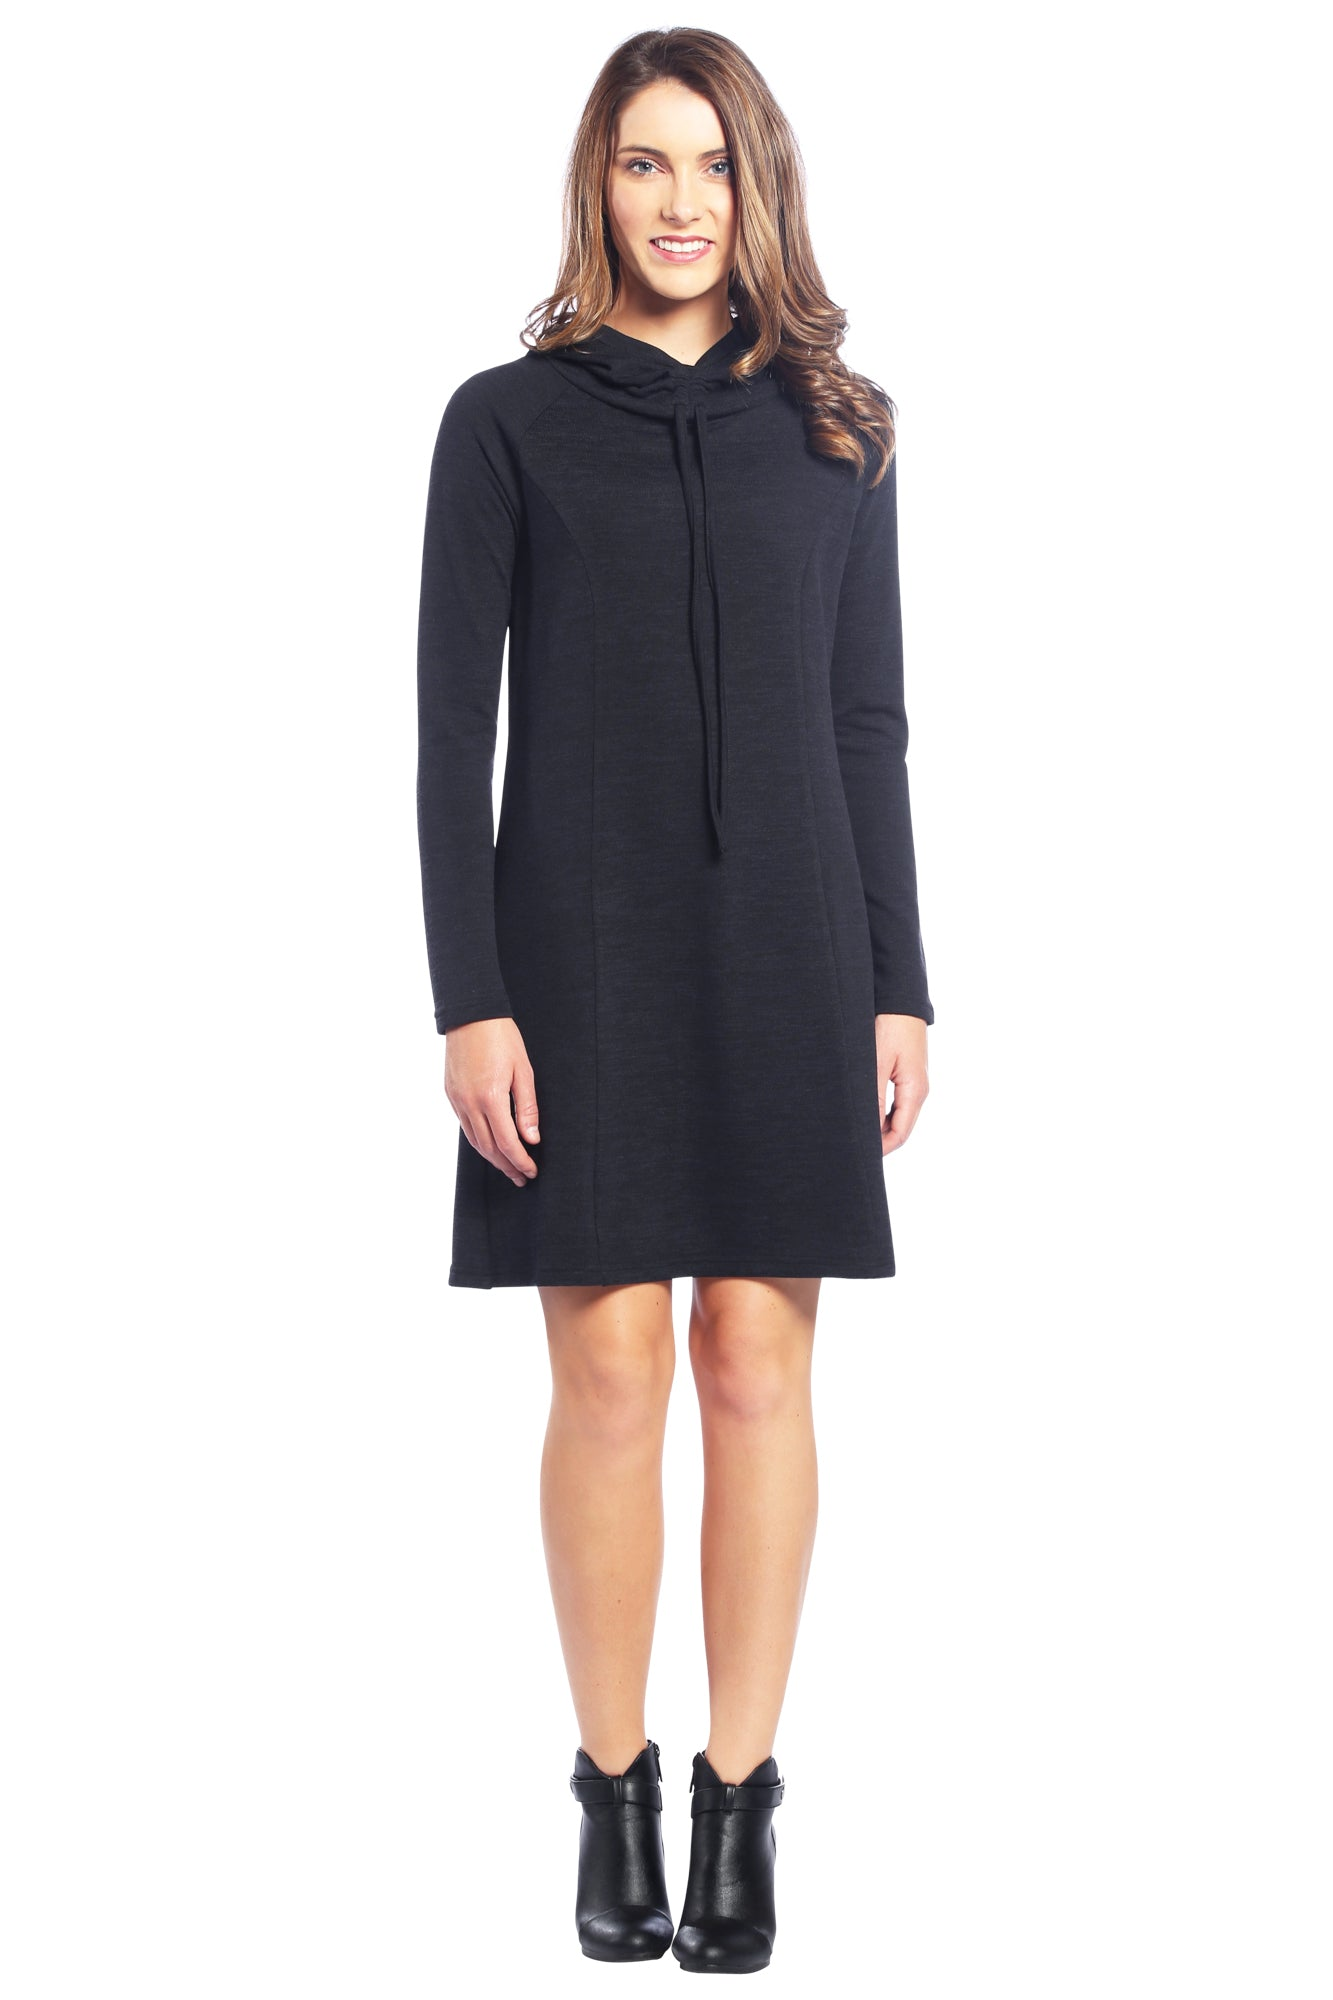 Drawstring Cowl Neck Sweater Dress with Hoodie in Black